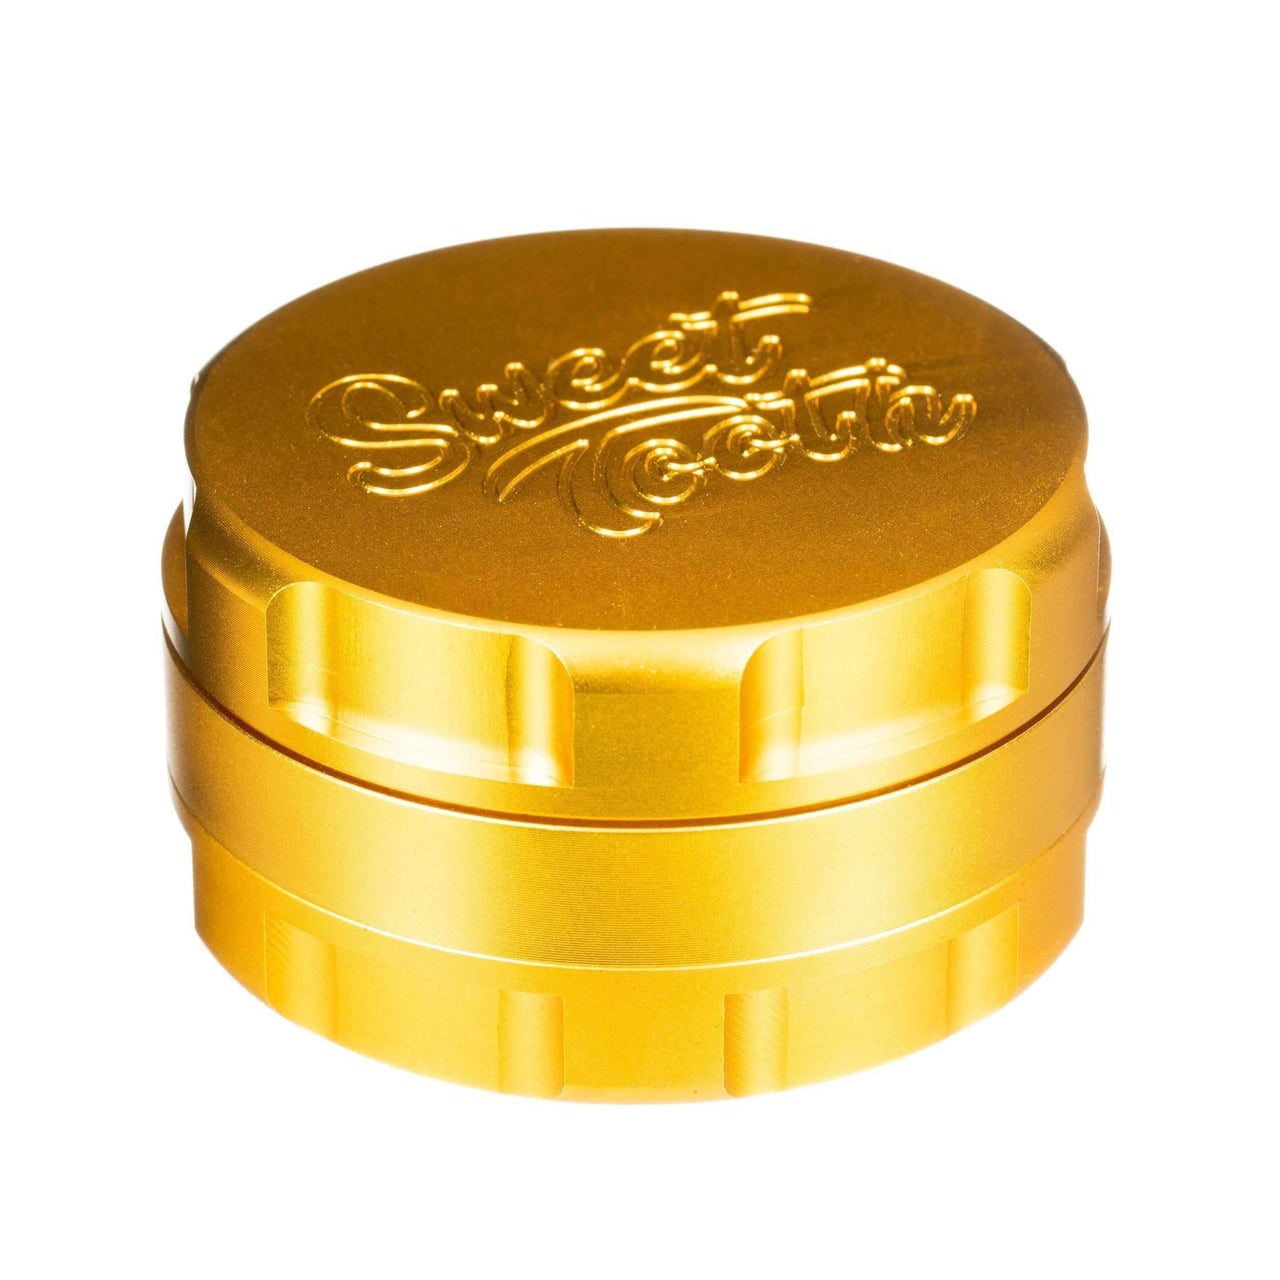 Sweet Tooth 3-Piece Large Aluminum Grinder - Gold | The710Source.com